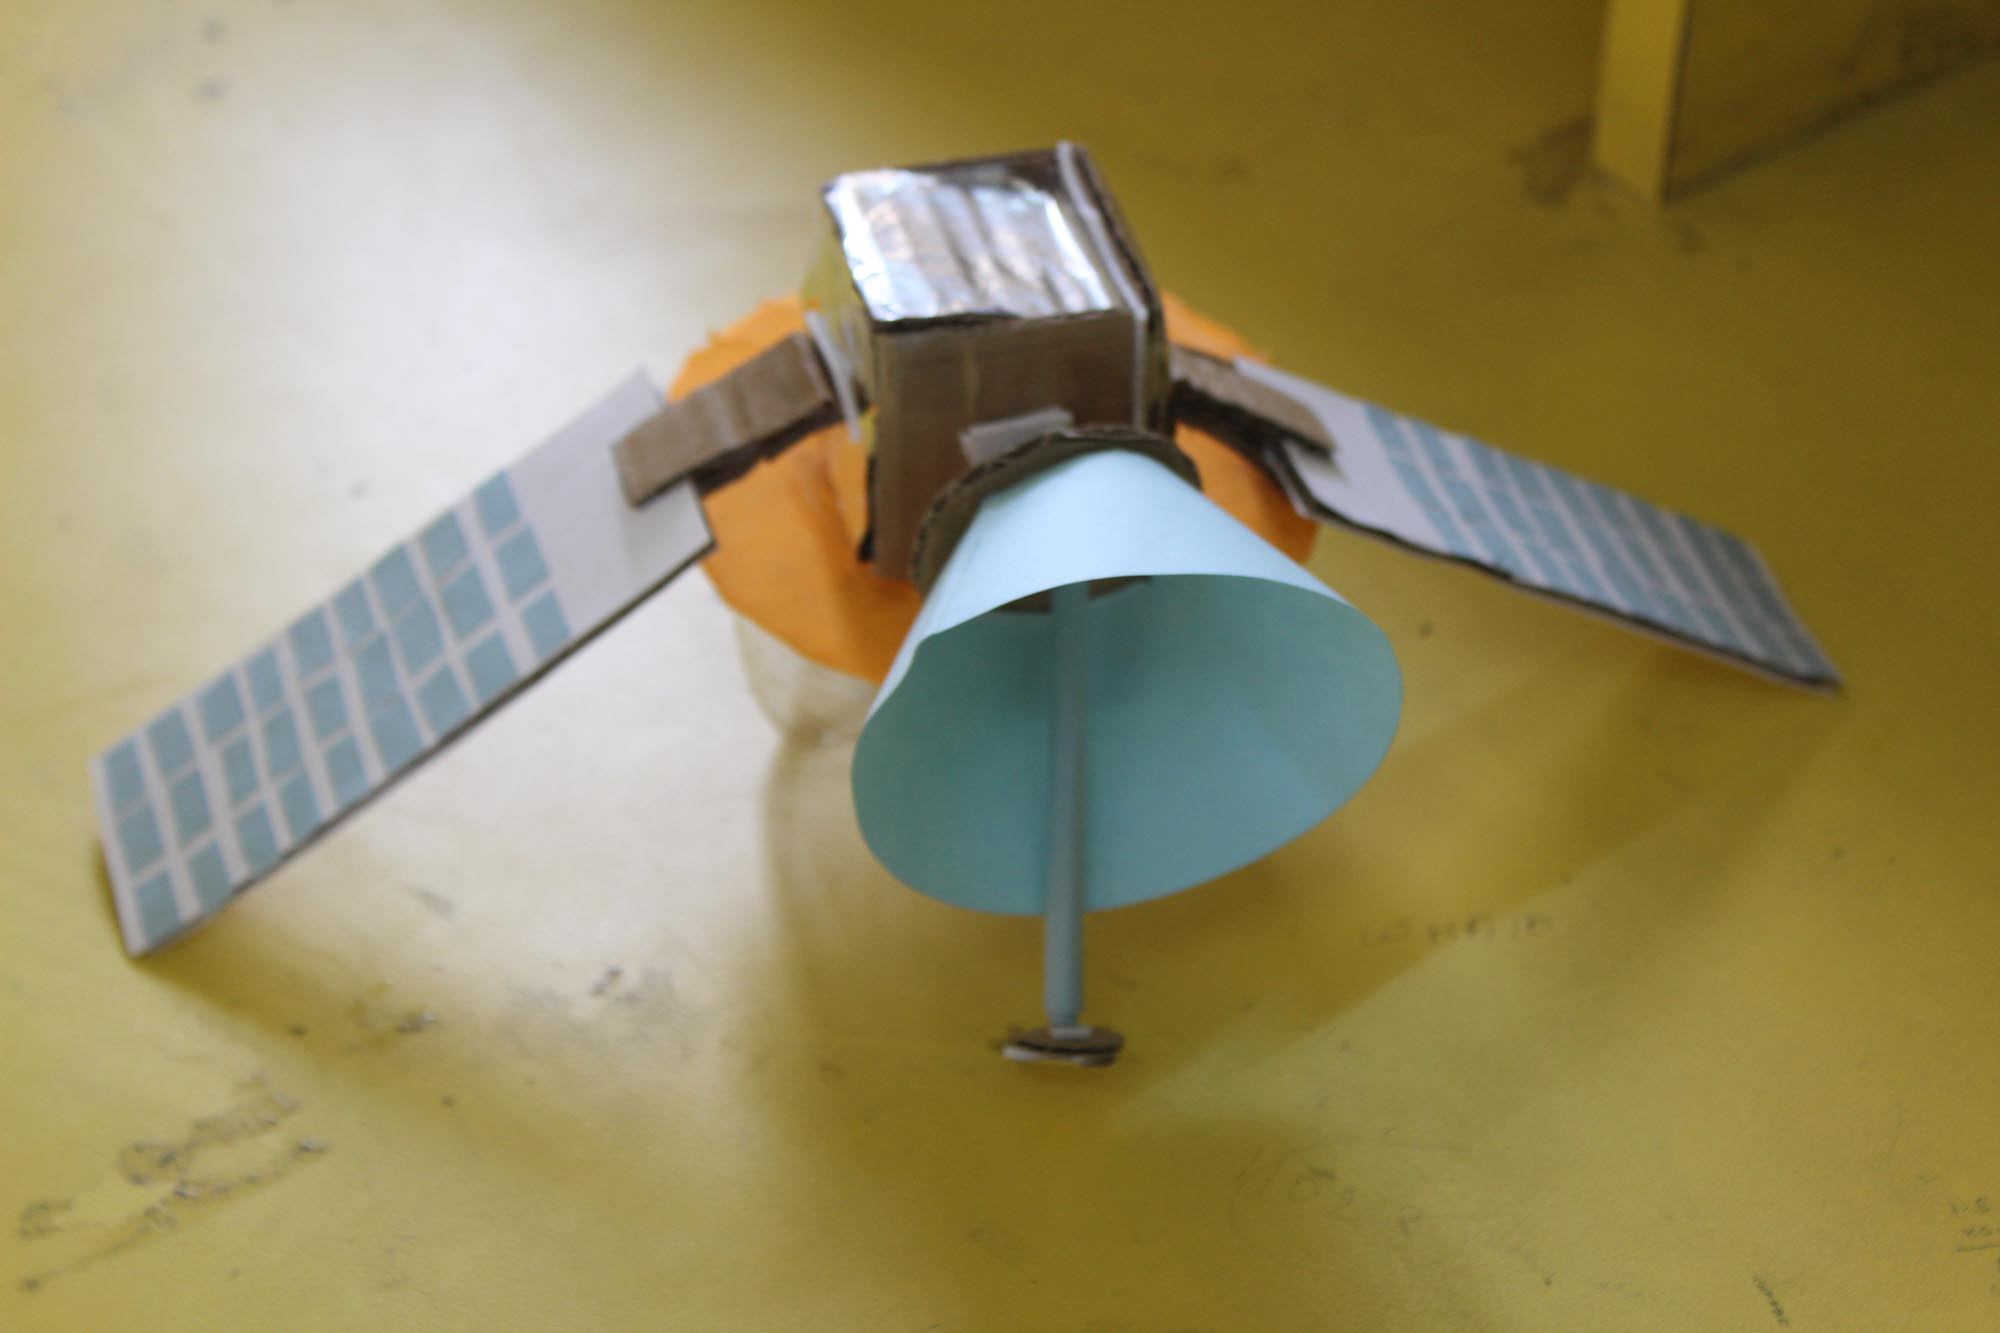 Satellite making from trash